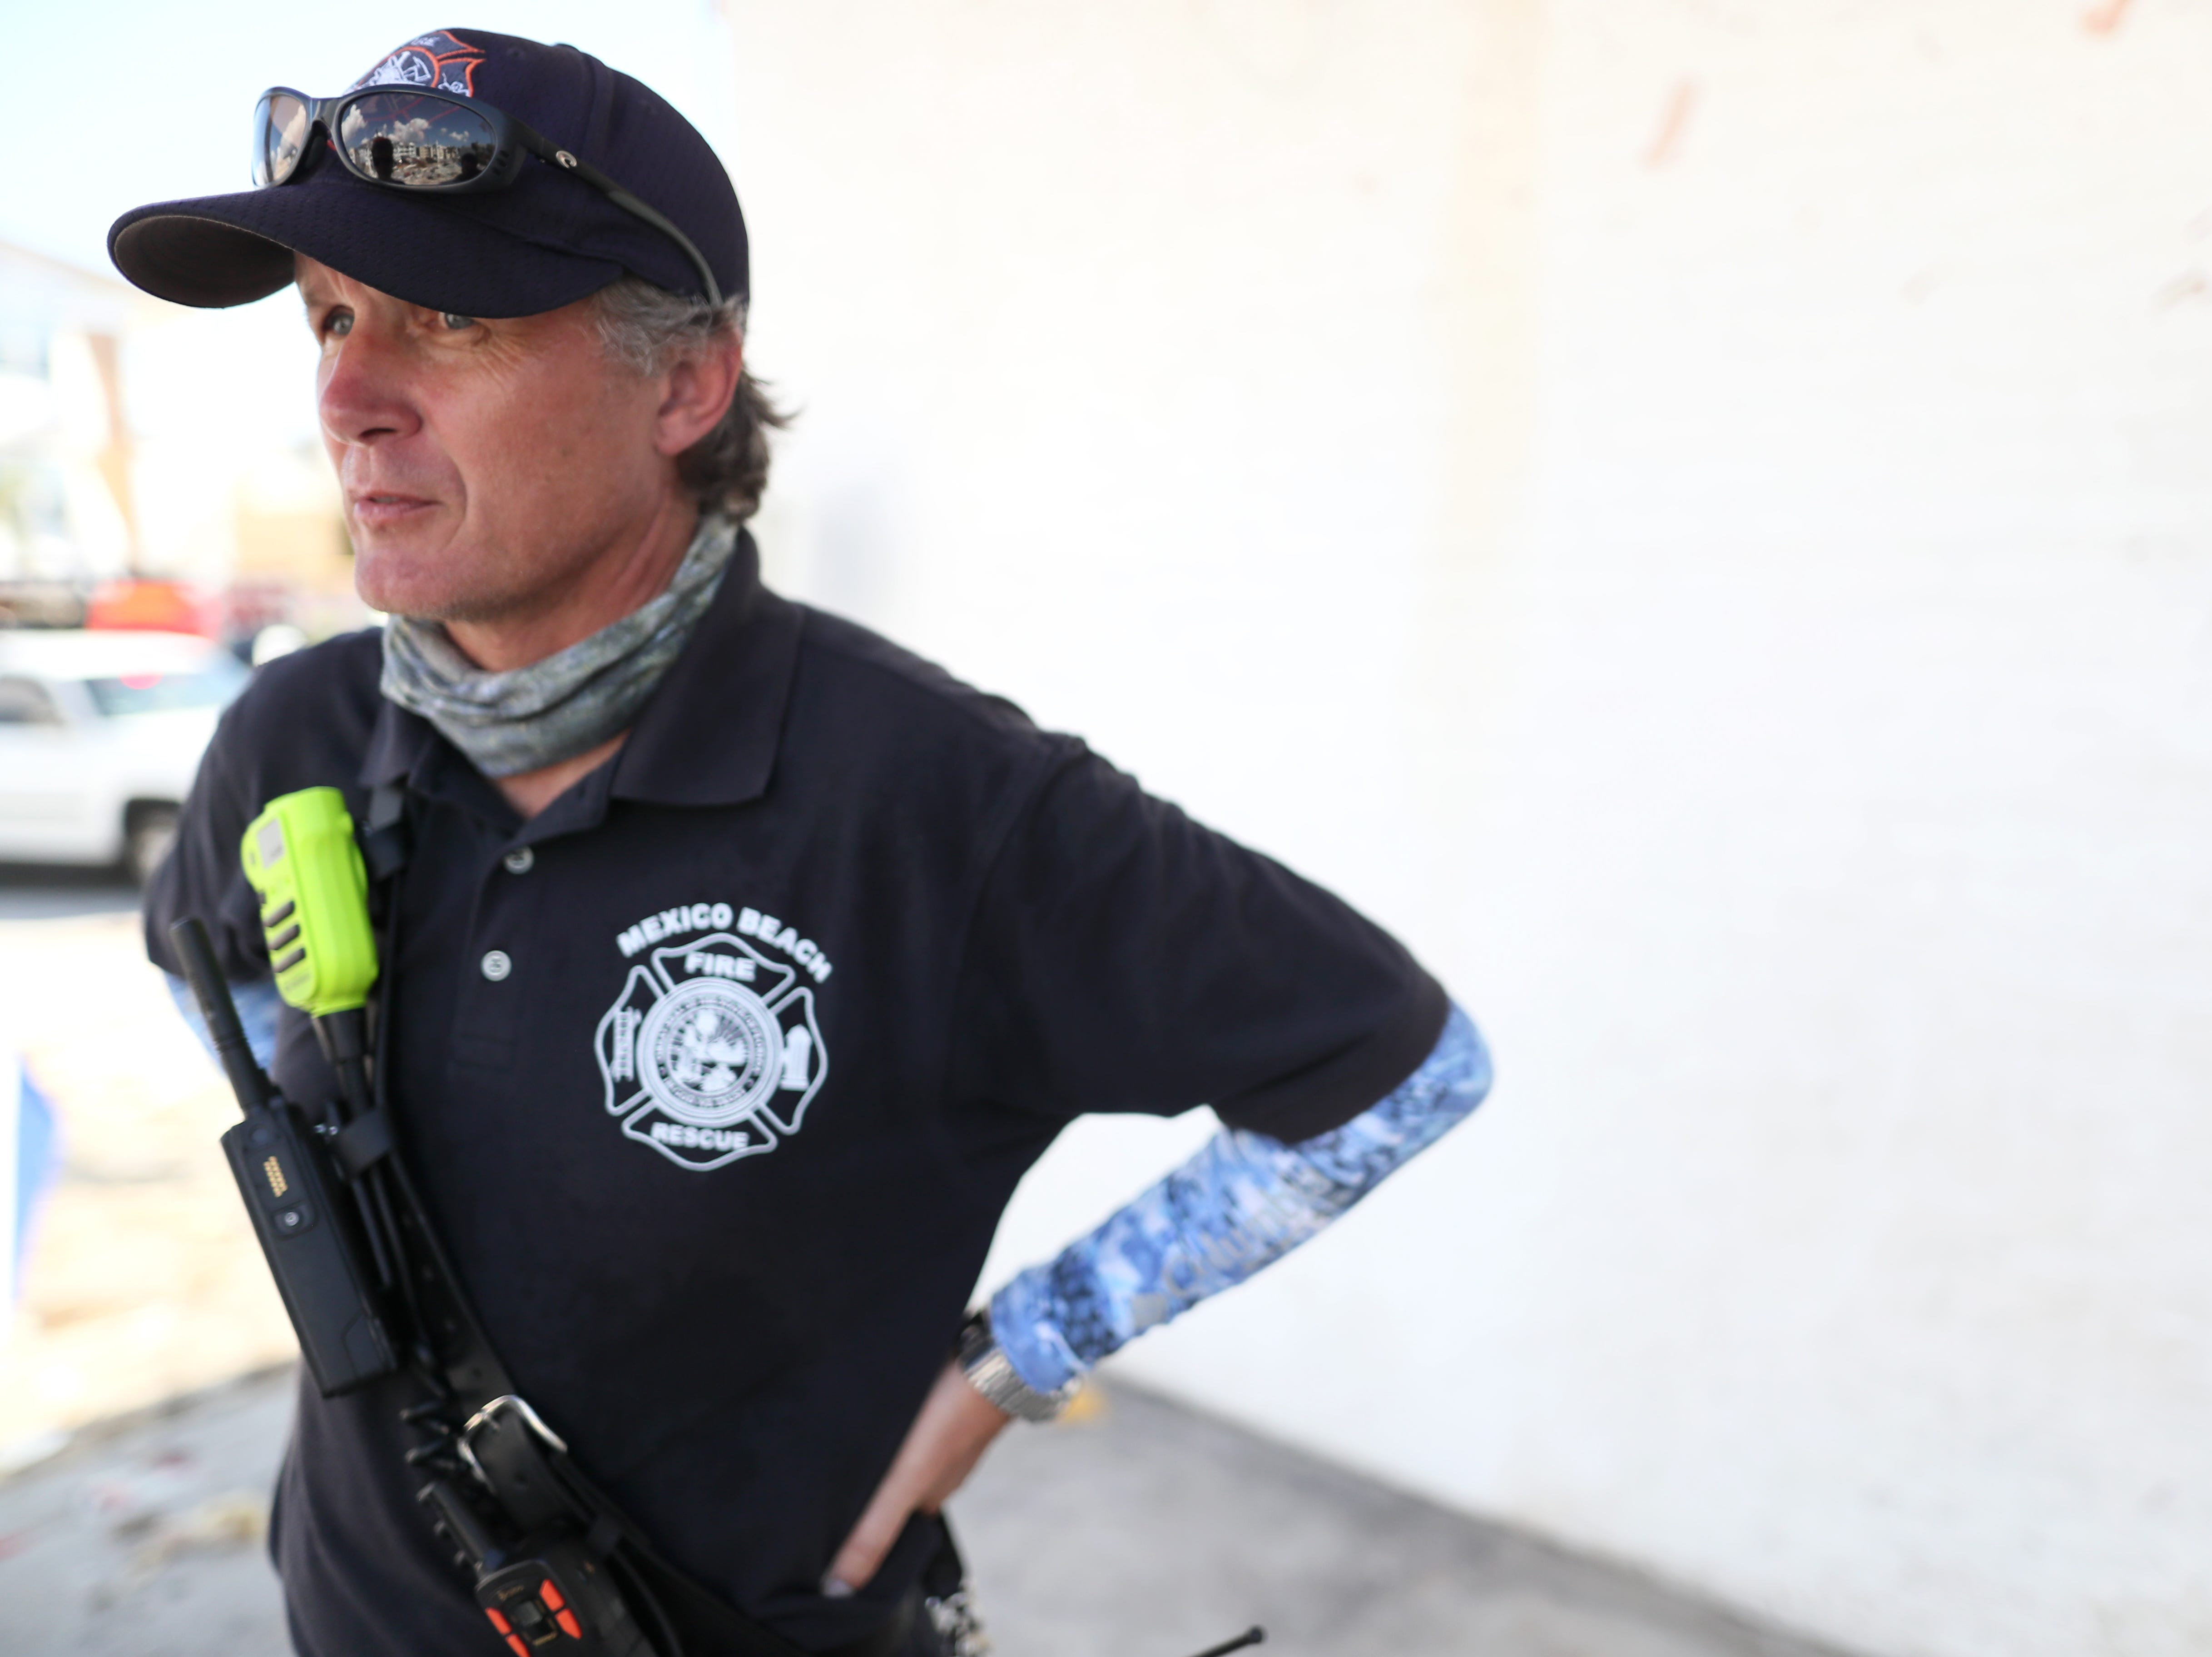 """Donald """"Sandy"""" Walker, Mexico Beach's interim fire chief says there are four confirmed deaths in his city, with what he sees as the potential for more based on the sheer devastation of property on Wednesday, Oct. 17, 2018, one week after Hurricane Michael ripped through the coastal Florida town."""